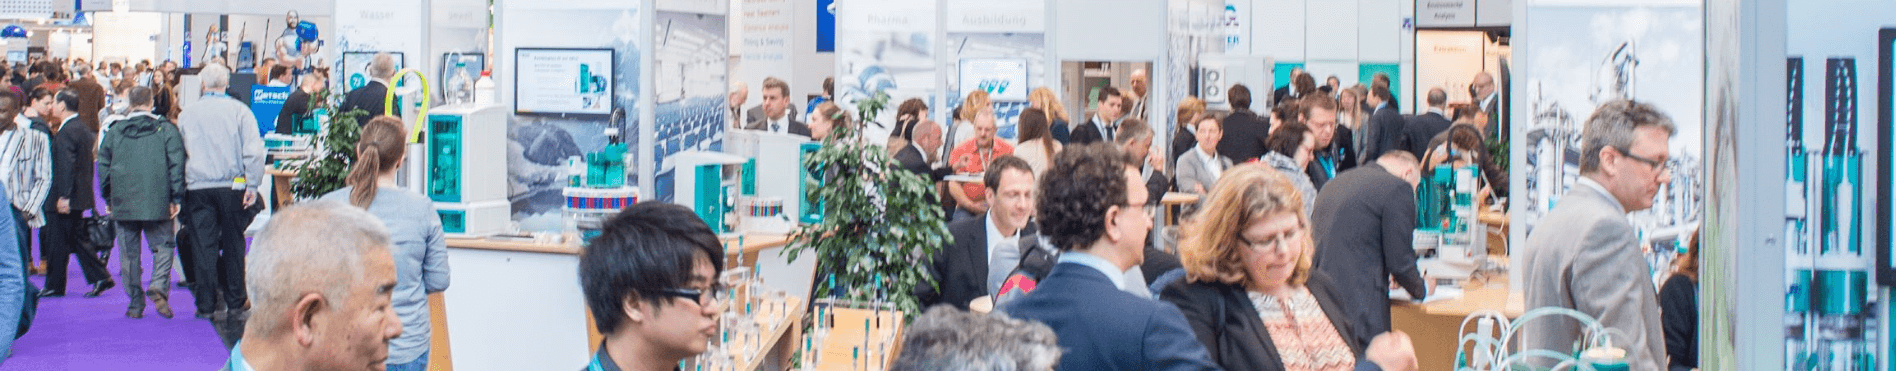 Analytica Crowd